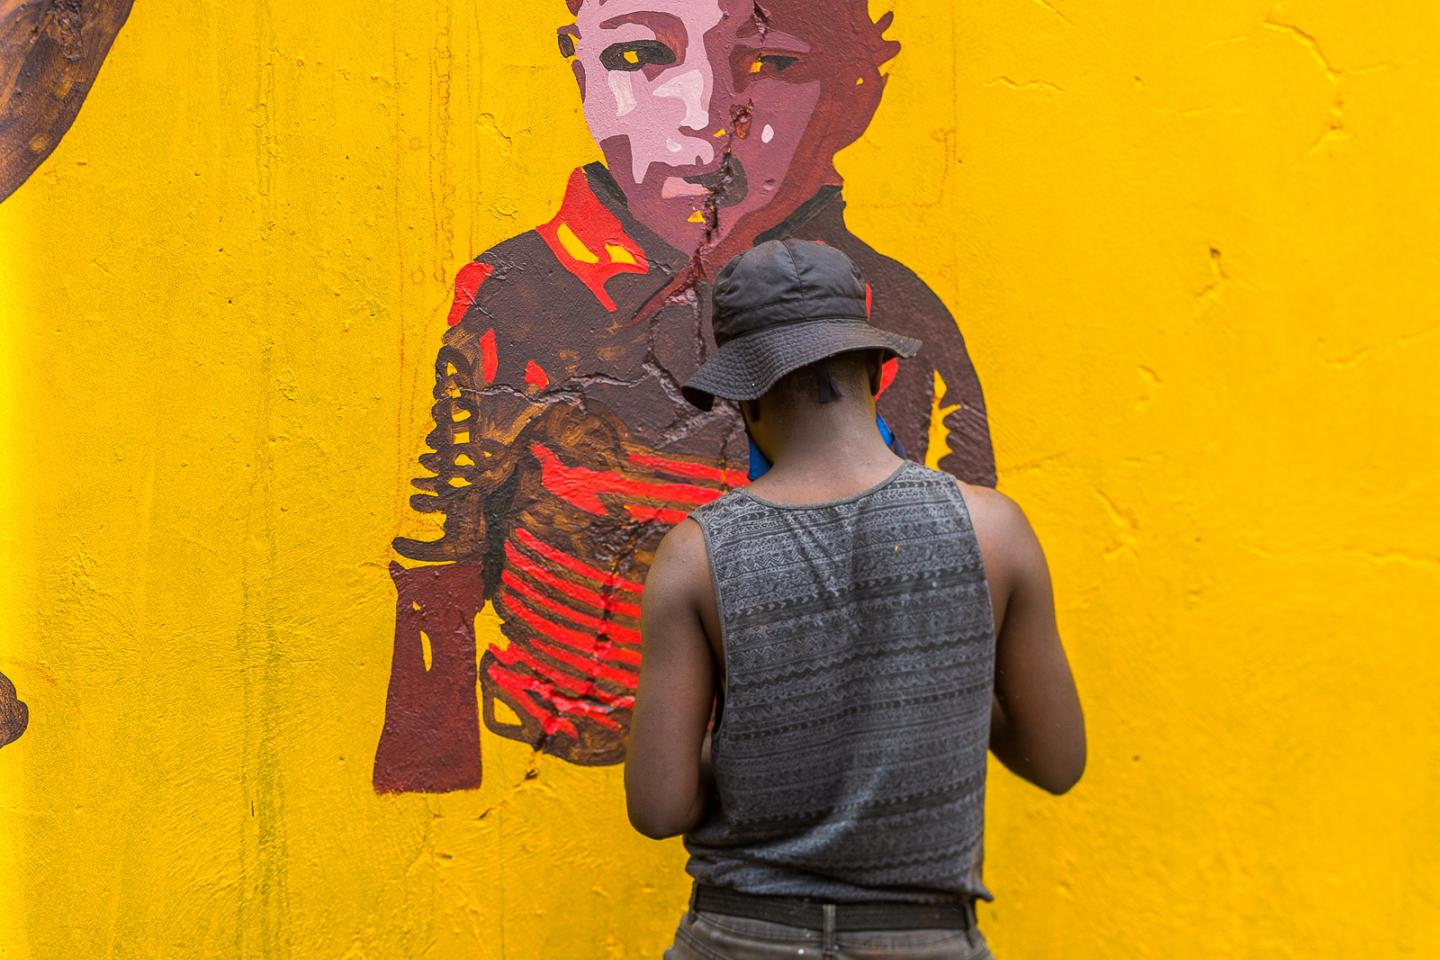 spreading health messages through art